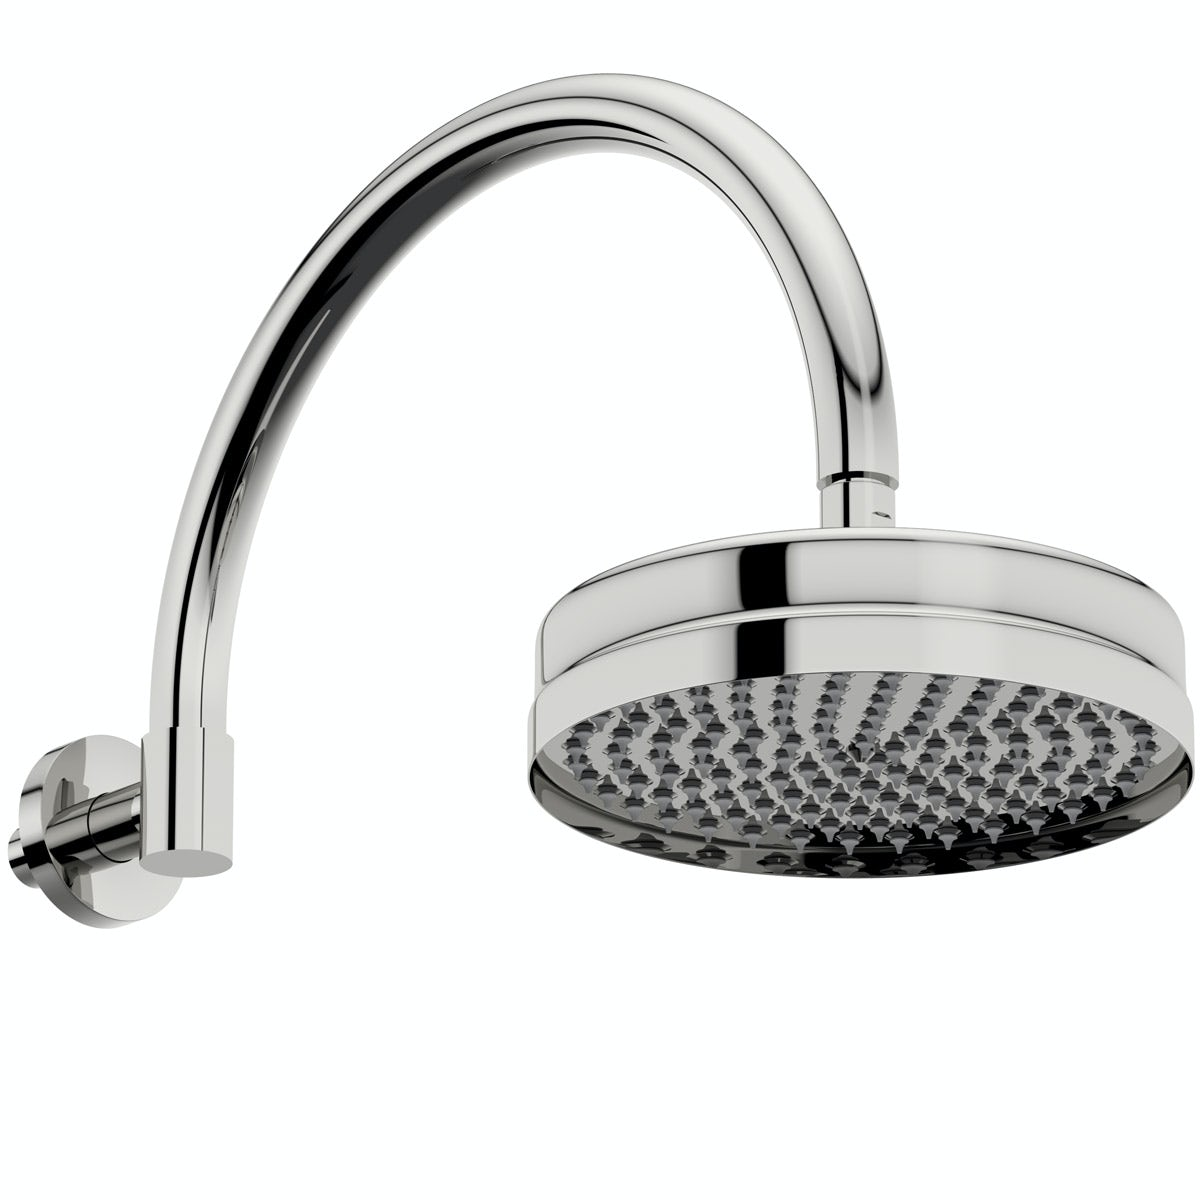 The Bath Co. Camberley shower head with traditional wall arm